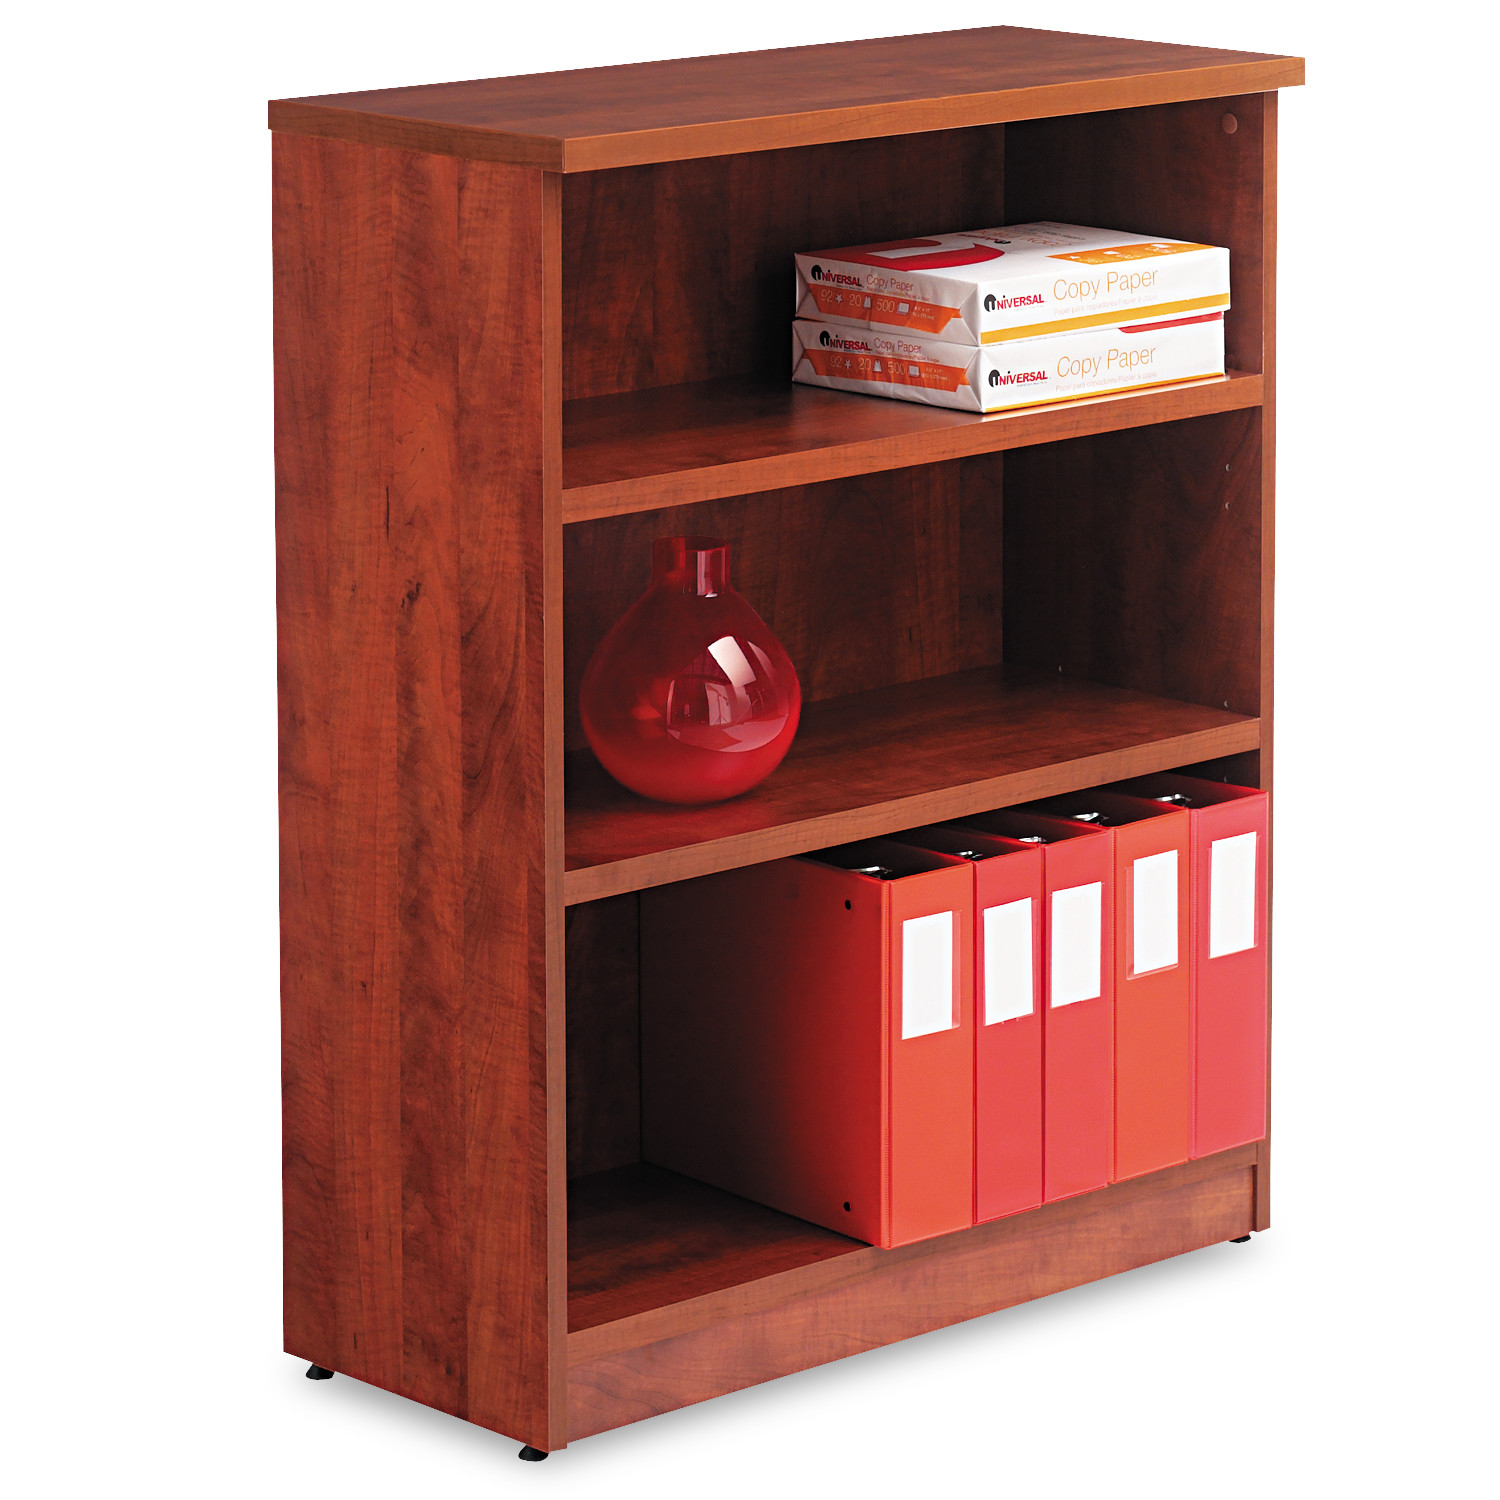 Alera Alera Valencia Series Bookcase, Three-Shelf, 31 3 4w x 14d x 39 3 8h, Med Cherry by ALERA